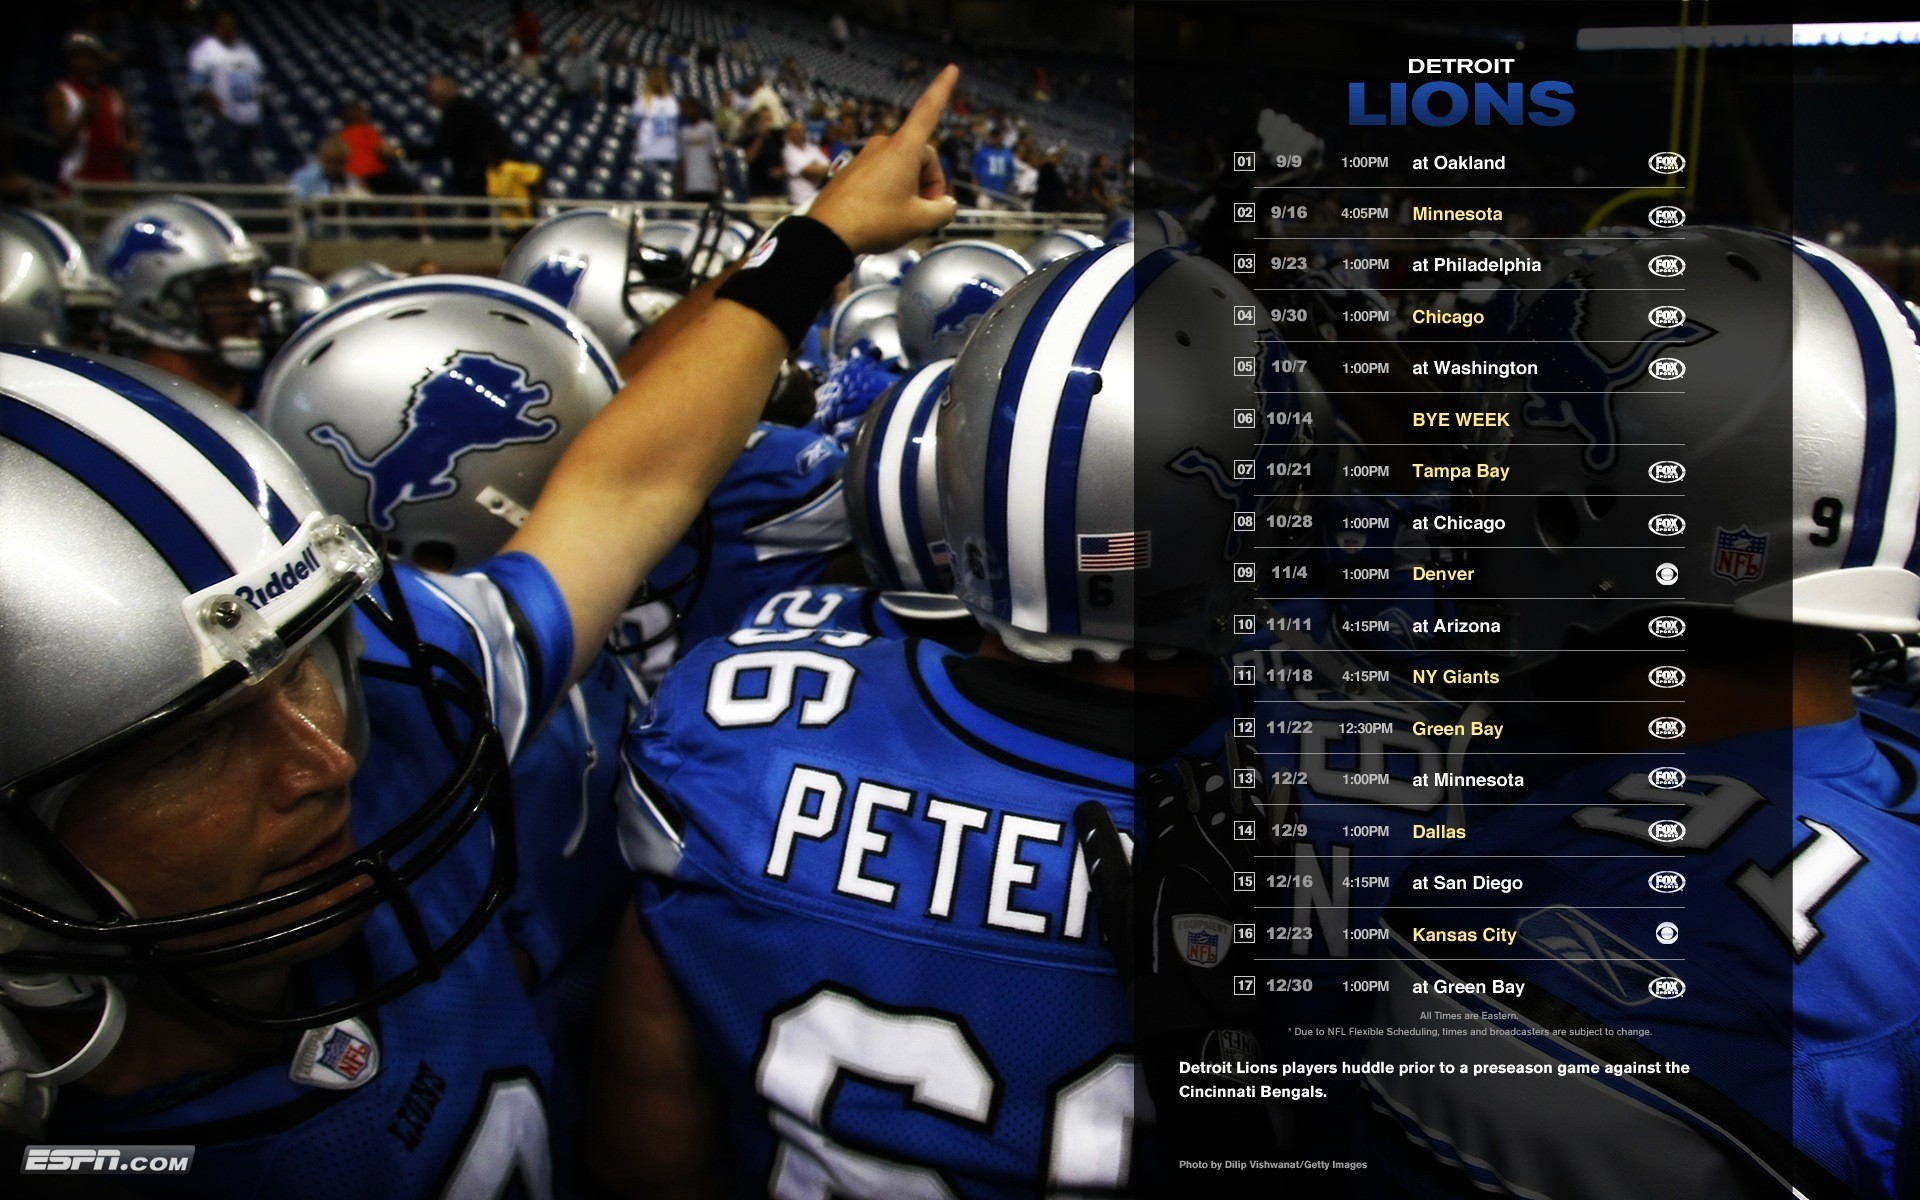 1920x1200 Collection of Detroit Lions Desktop Wallpaper on Spyder Wallpapers Detroit  Lions Wallpaper Wallpapers)